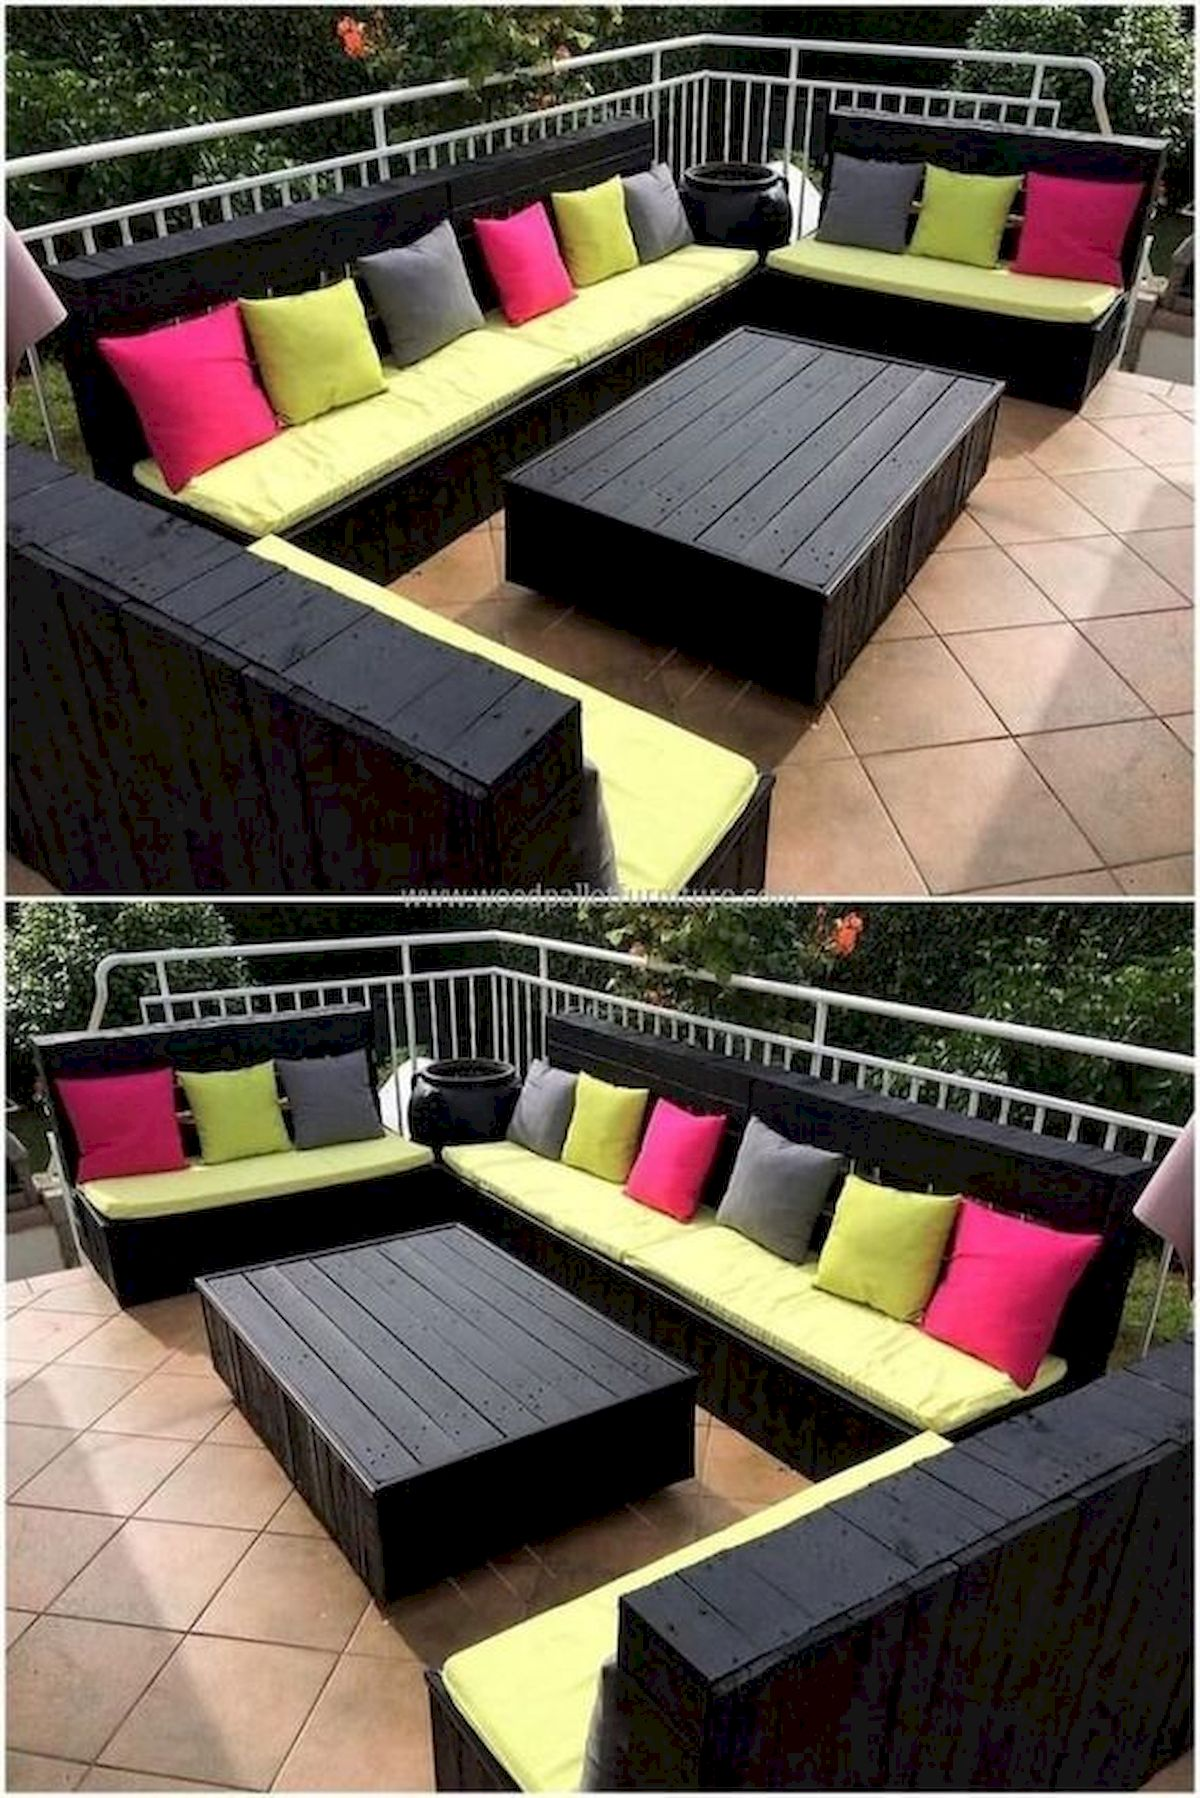 50 Amazing DIY Projects Outdoor Furniture Design Ideas (42)